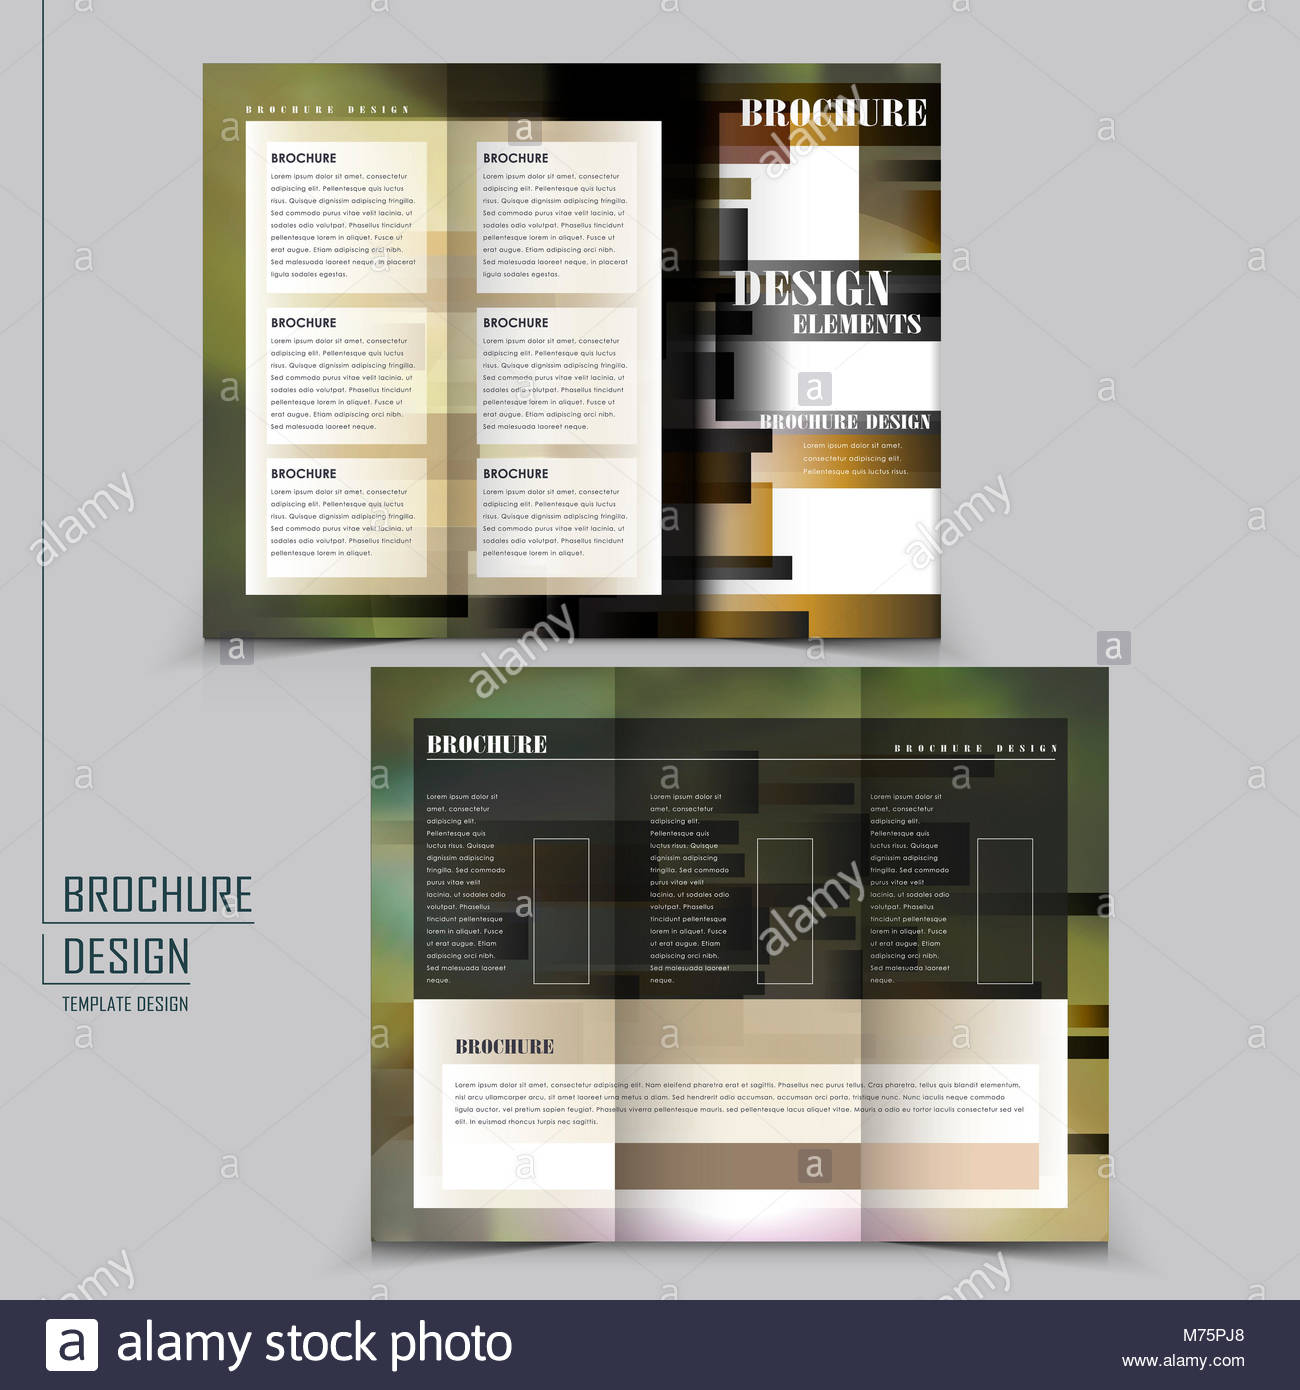 abstract tri fold brochure template design with blurred background Stock Image